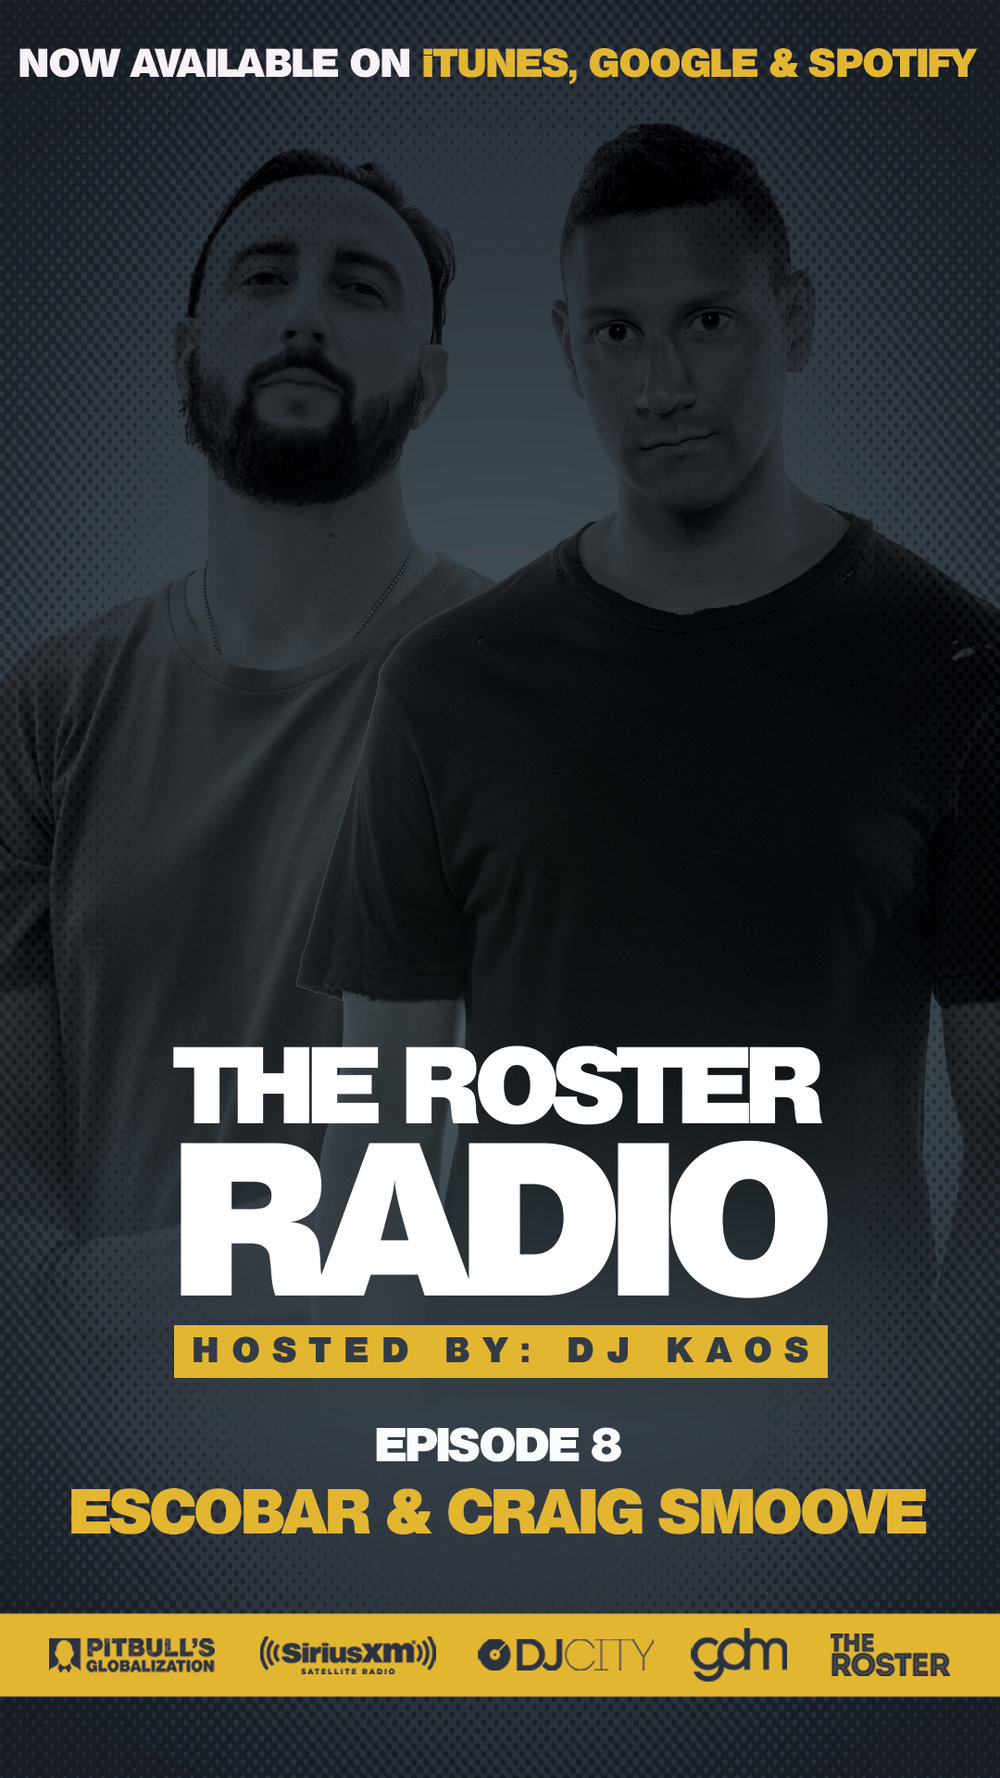 TheRosterRadio-Episode8-CS&Esco-StreamArt.jpg